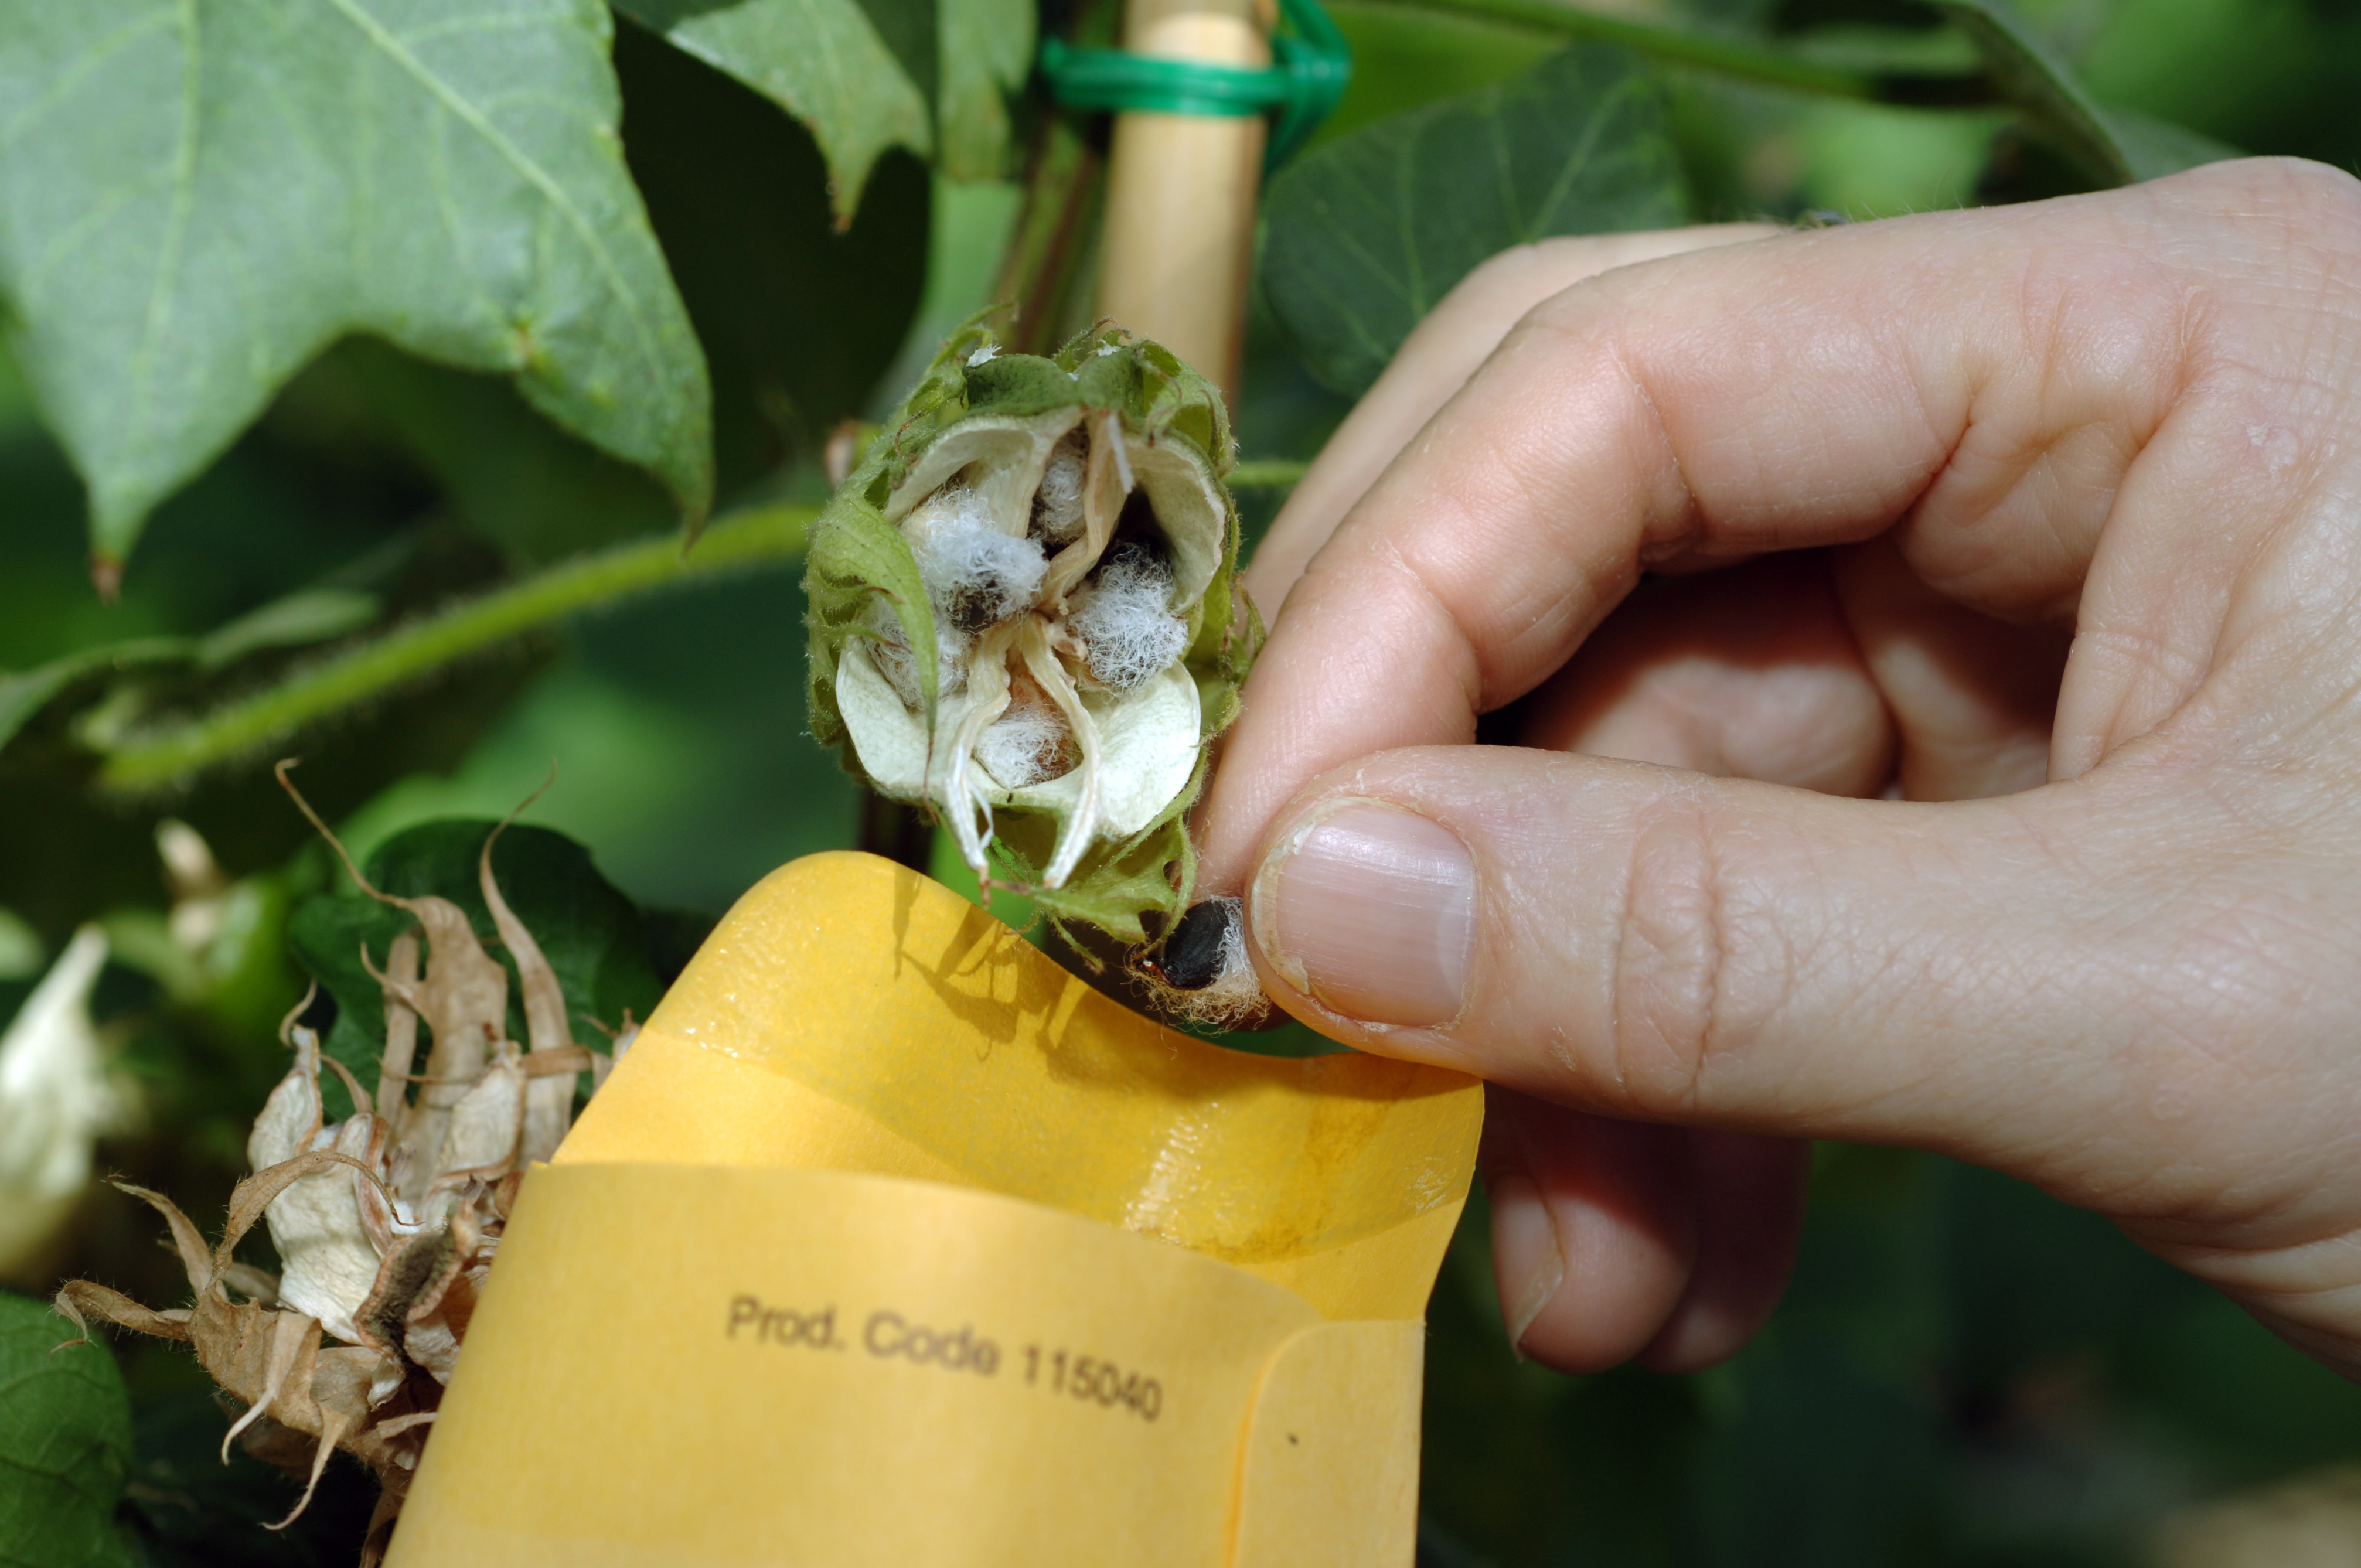 Close up view of a hand collecting and placing seeds in an envelope